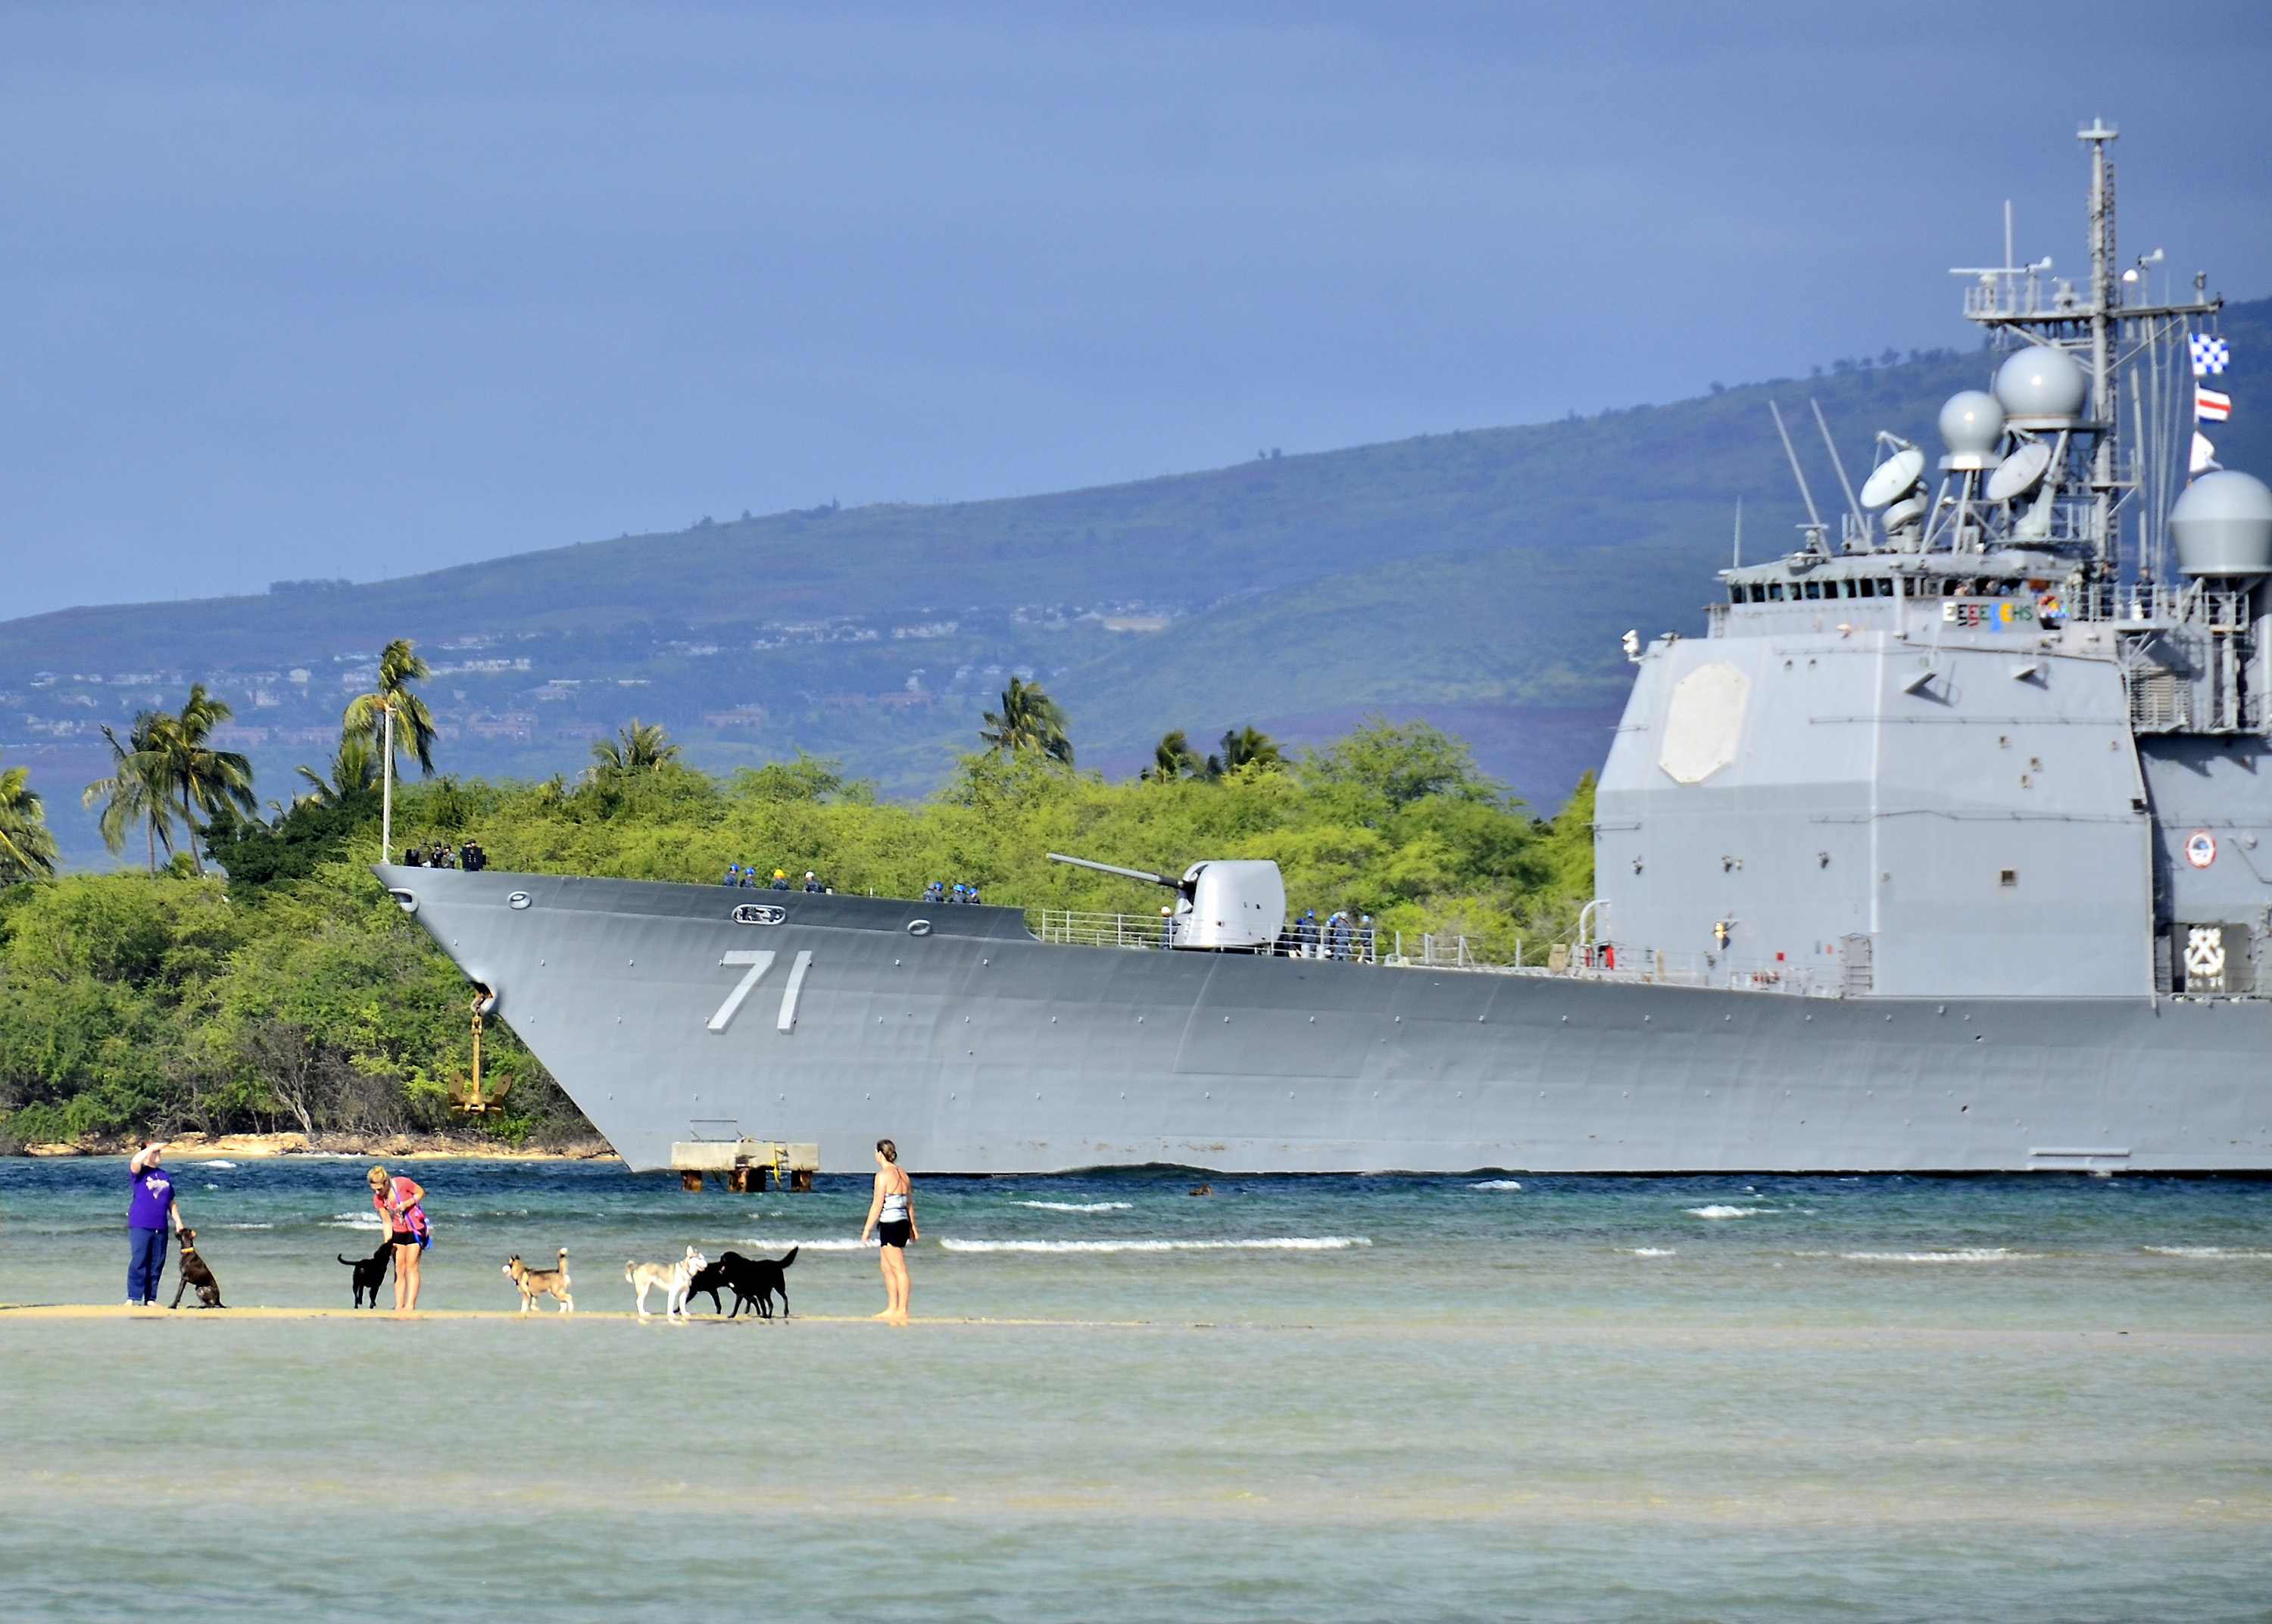 USS CAPE ST. GEORGE CG-71 am 25.01.2014 in Pearl Harbor Bild: U.S. Navy